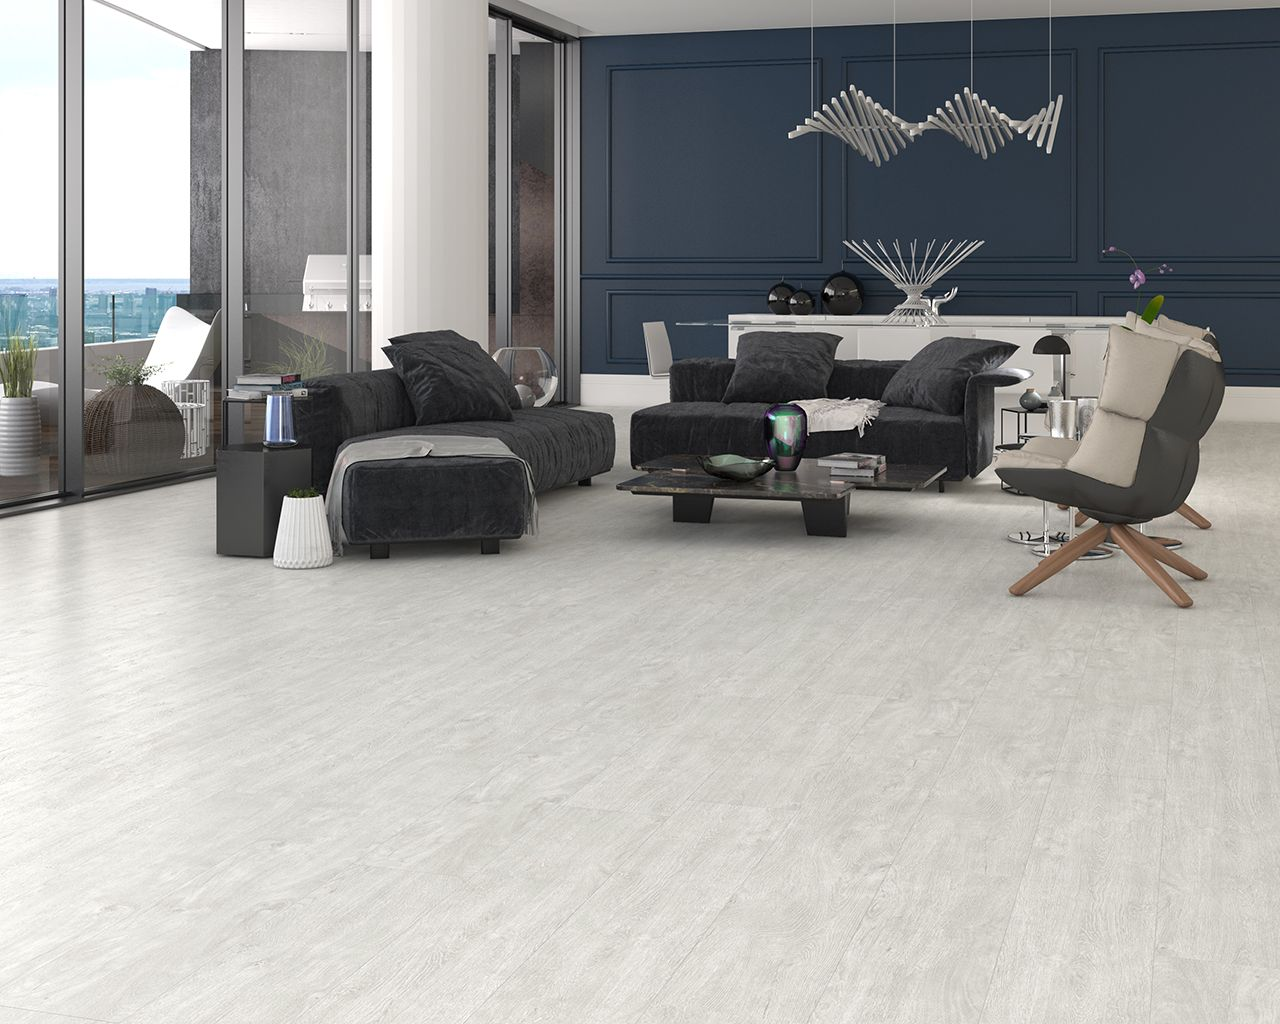 Fortem Grand Suite Whitelog 6.5 mm. Engineered Waterproof Floor